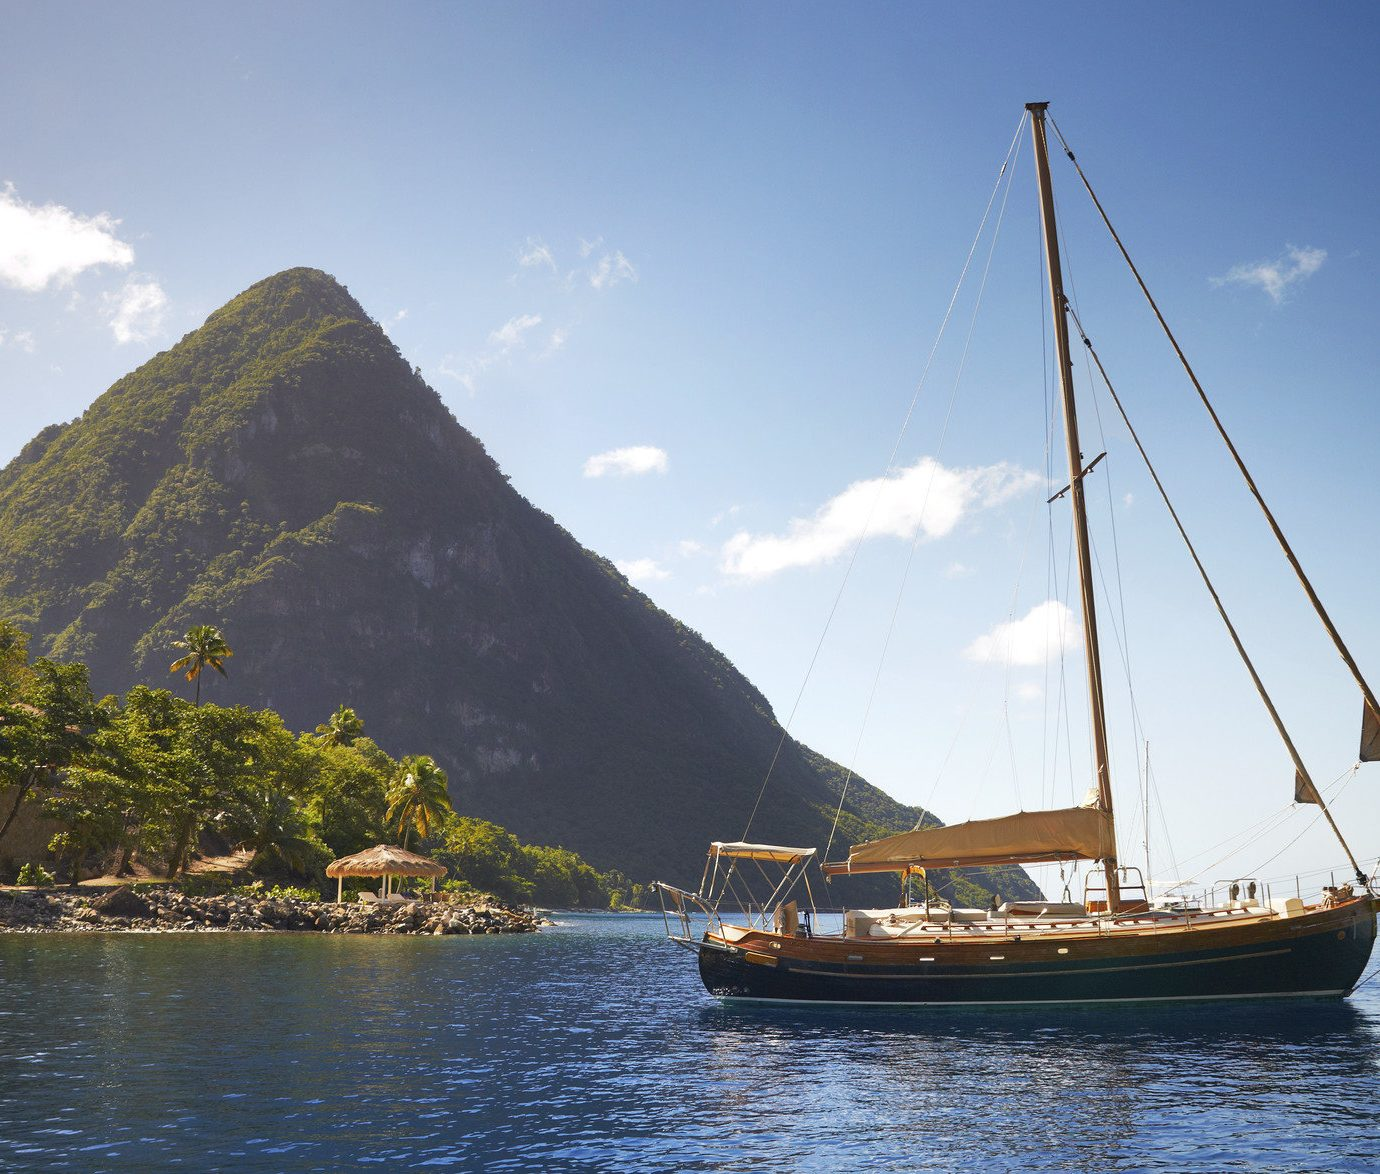 Hotels Luxury Travel Trip Ideas water Boat outdoor sky mountain watercraft vehicle transport Sea ship sailing vessel Lake bay floating sailboat background Coast schooner sailing sail shore day